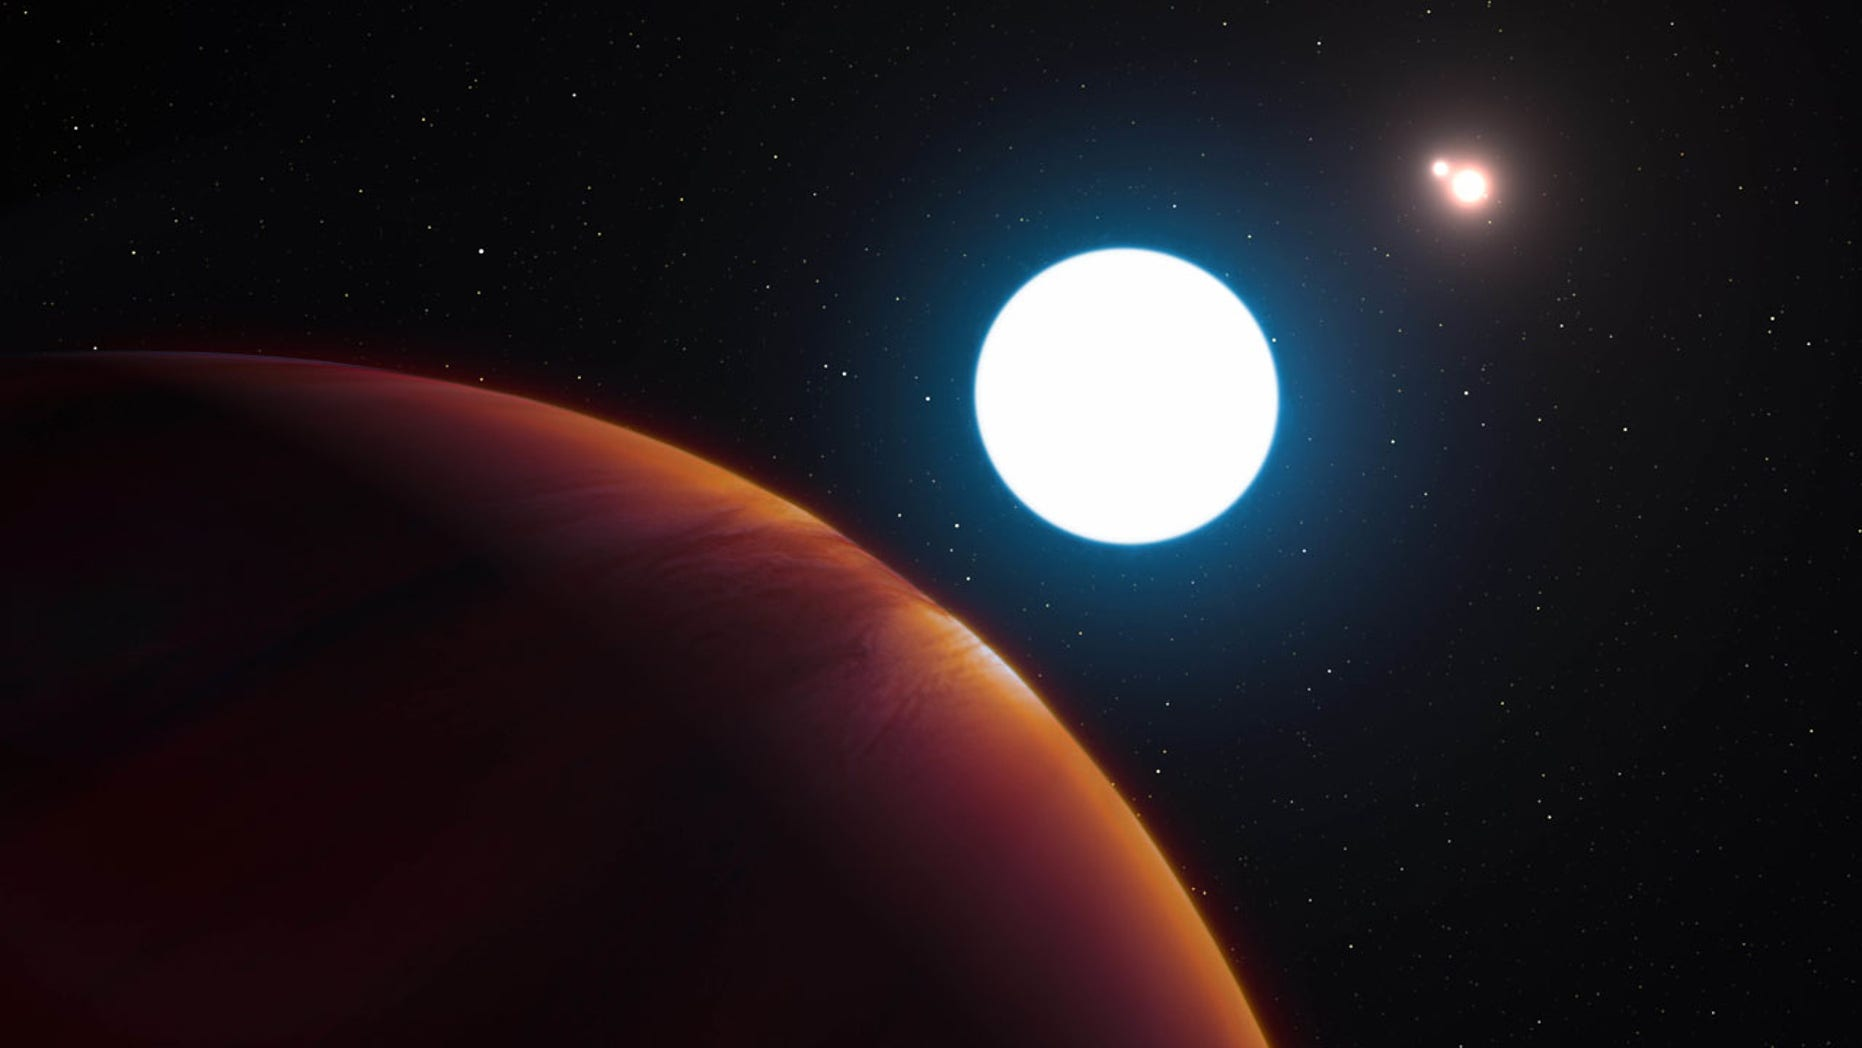 This image provided by the European Southern Observatory shows an artist's impression of the triple star system HD 131399 from close to the gas giant planet orbiting in the system. A University of Arizona-led team used an ESO telescope in Chile to find the system 320 light years away. The astronomers revealed their findings Thursday, July 7, 2016. (L. Calçada/ESO via AP)